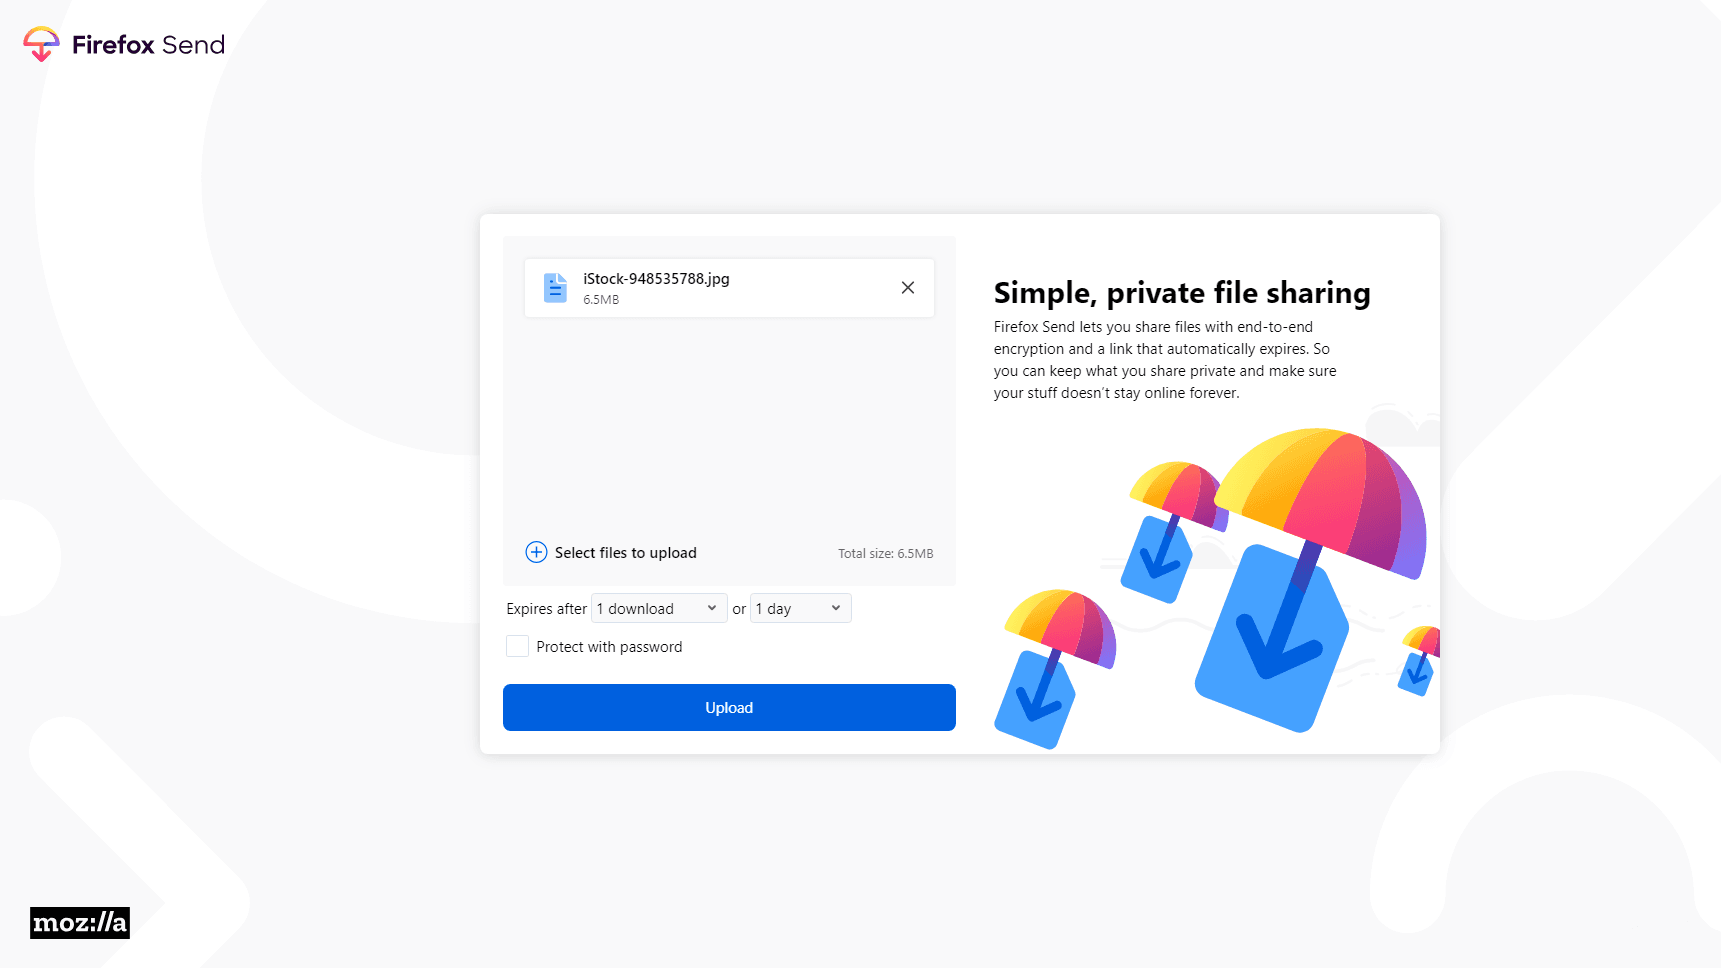 Firefox Send is een gratis en privacy-gerichte vervanger voor WeTransfer